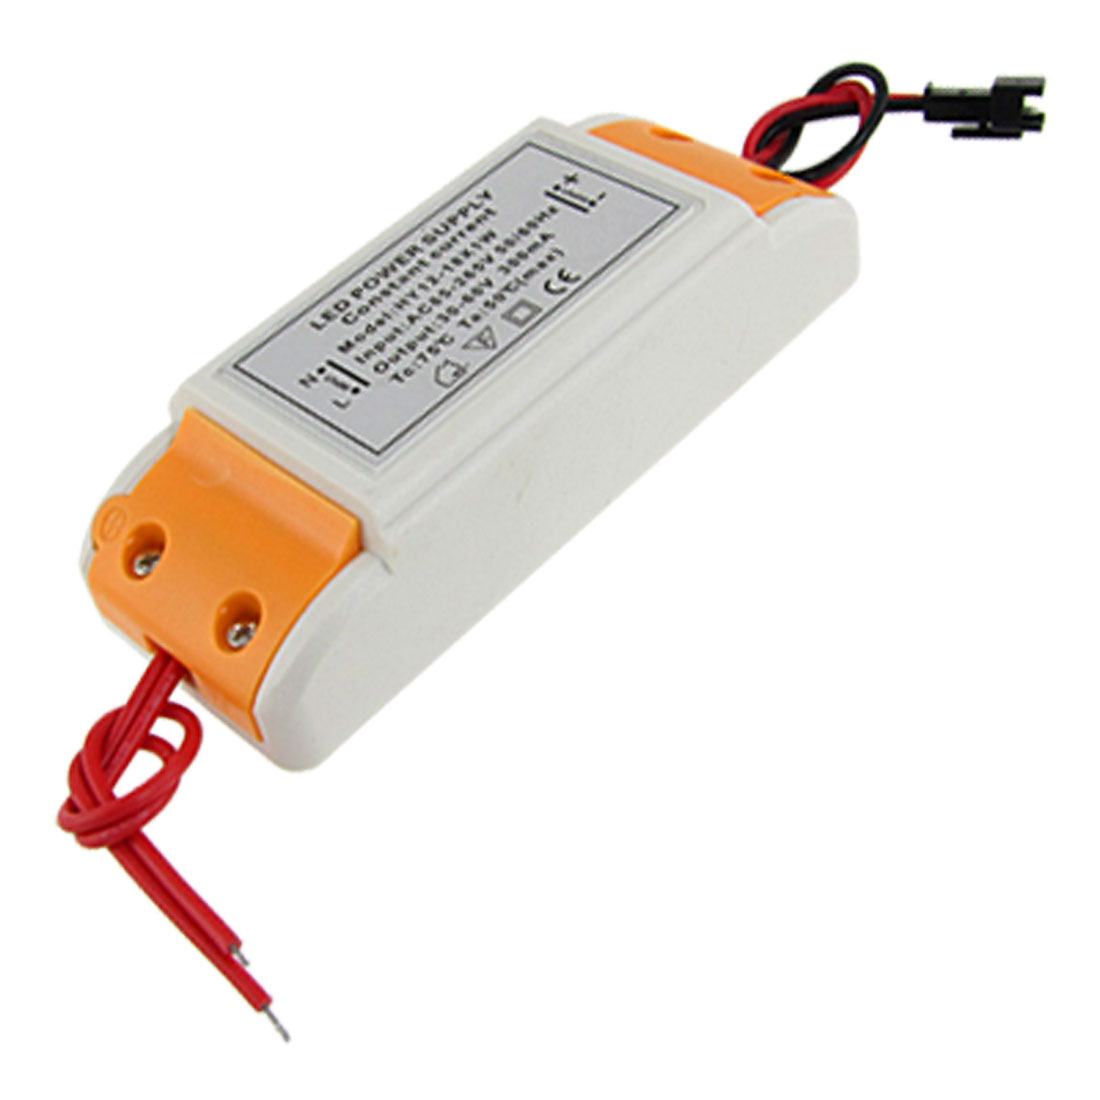 18x1W LED Strip Light Driver Power Supply Transformer AC 110-220V to DC 30-60V 300mA